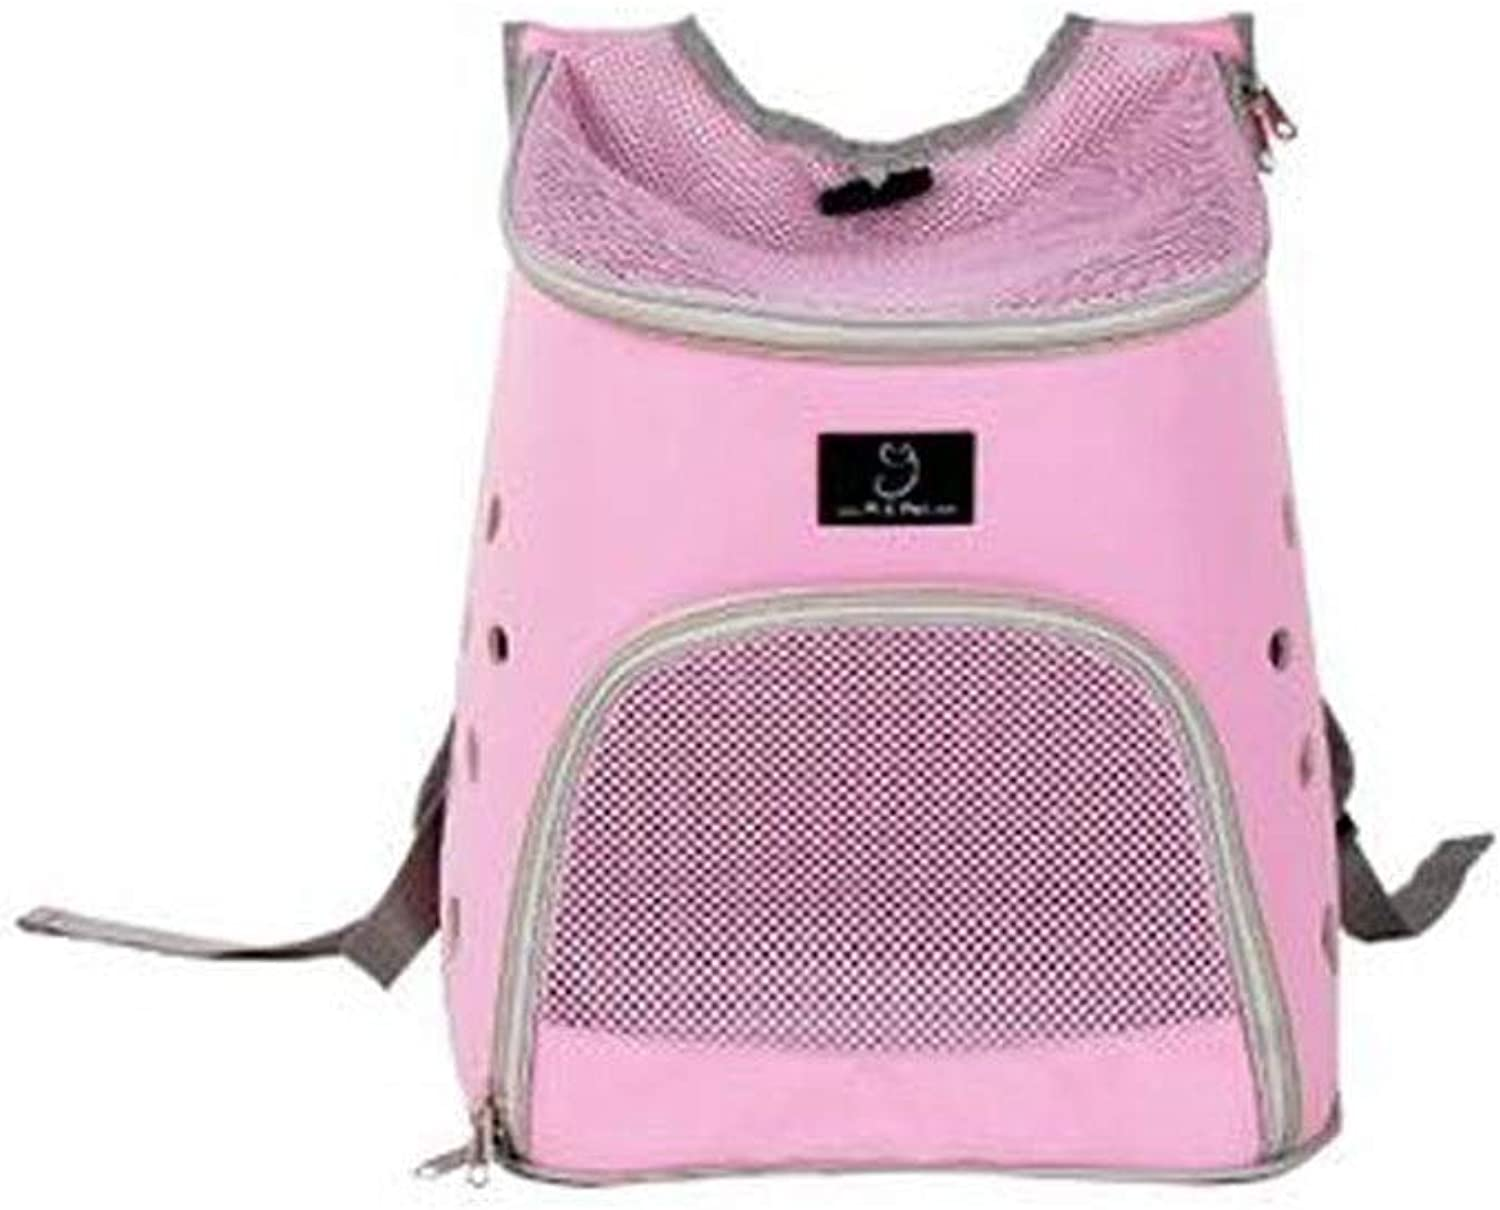 Guyuexuan Lightweight Pet Backpack, High Breathable Carrying Case, Suitable for Dogs, Cats, Pets, Camping, Suitable for Small and Medium Pets.Black, blueee, Pink Pet Travel Essentials (color   Pink)